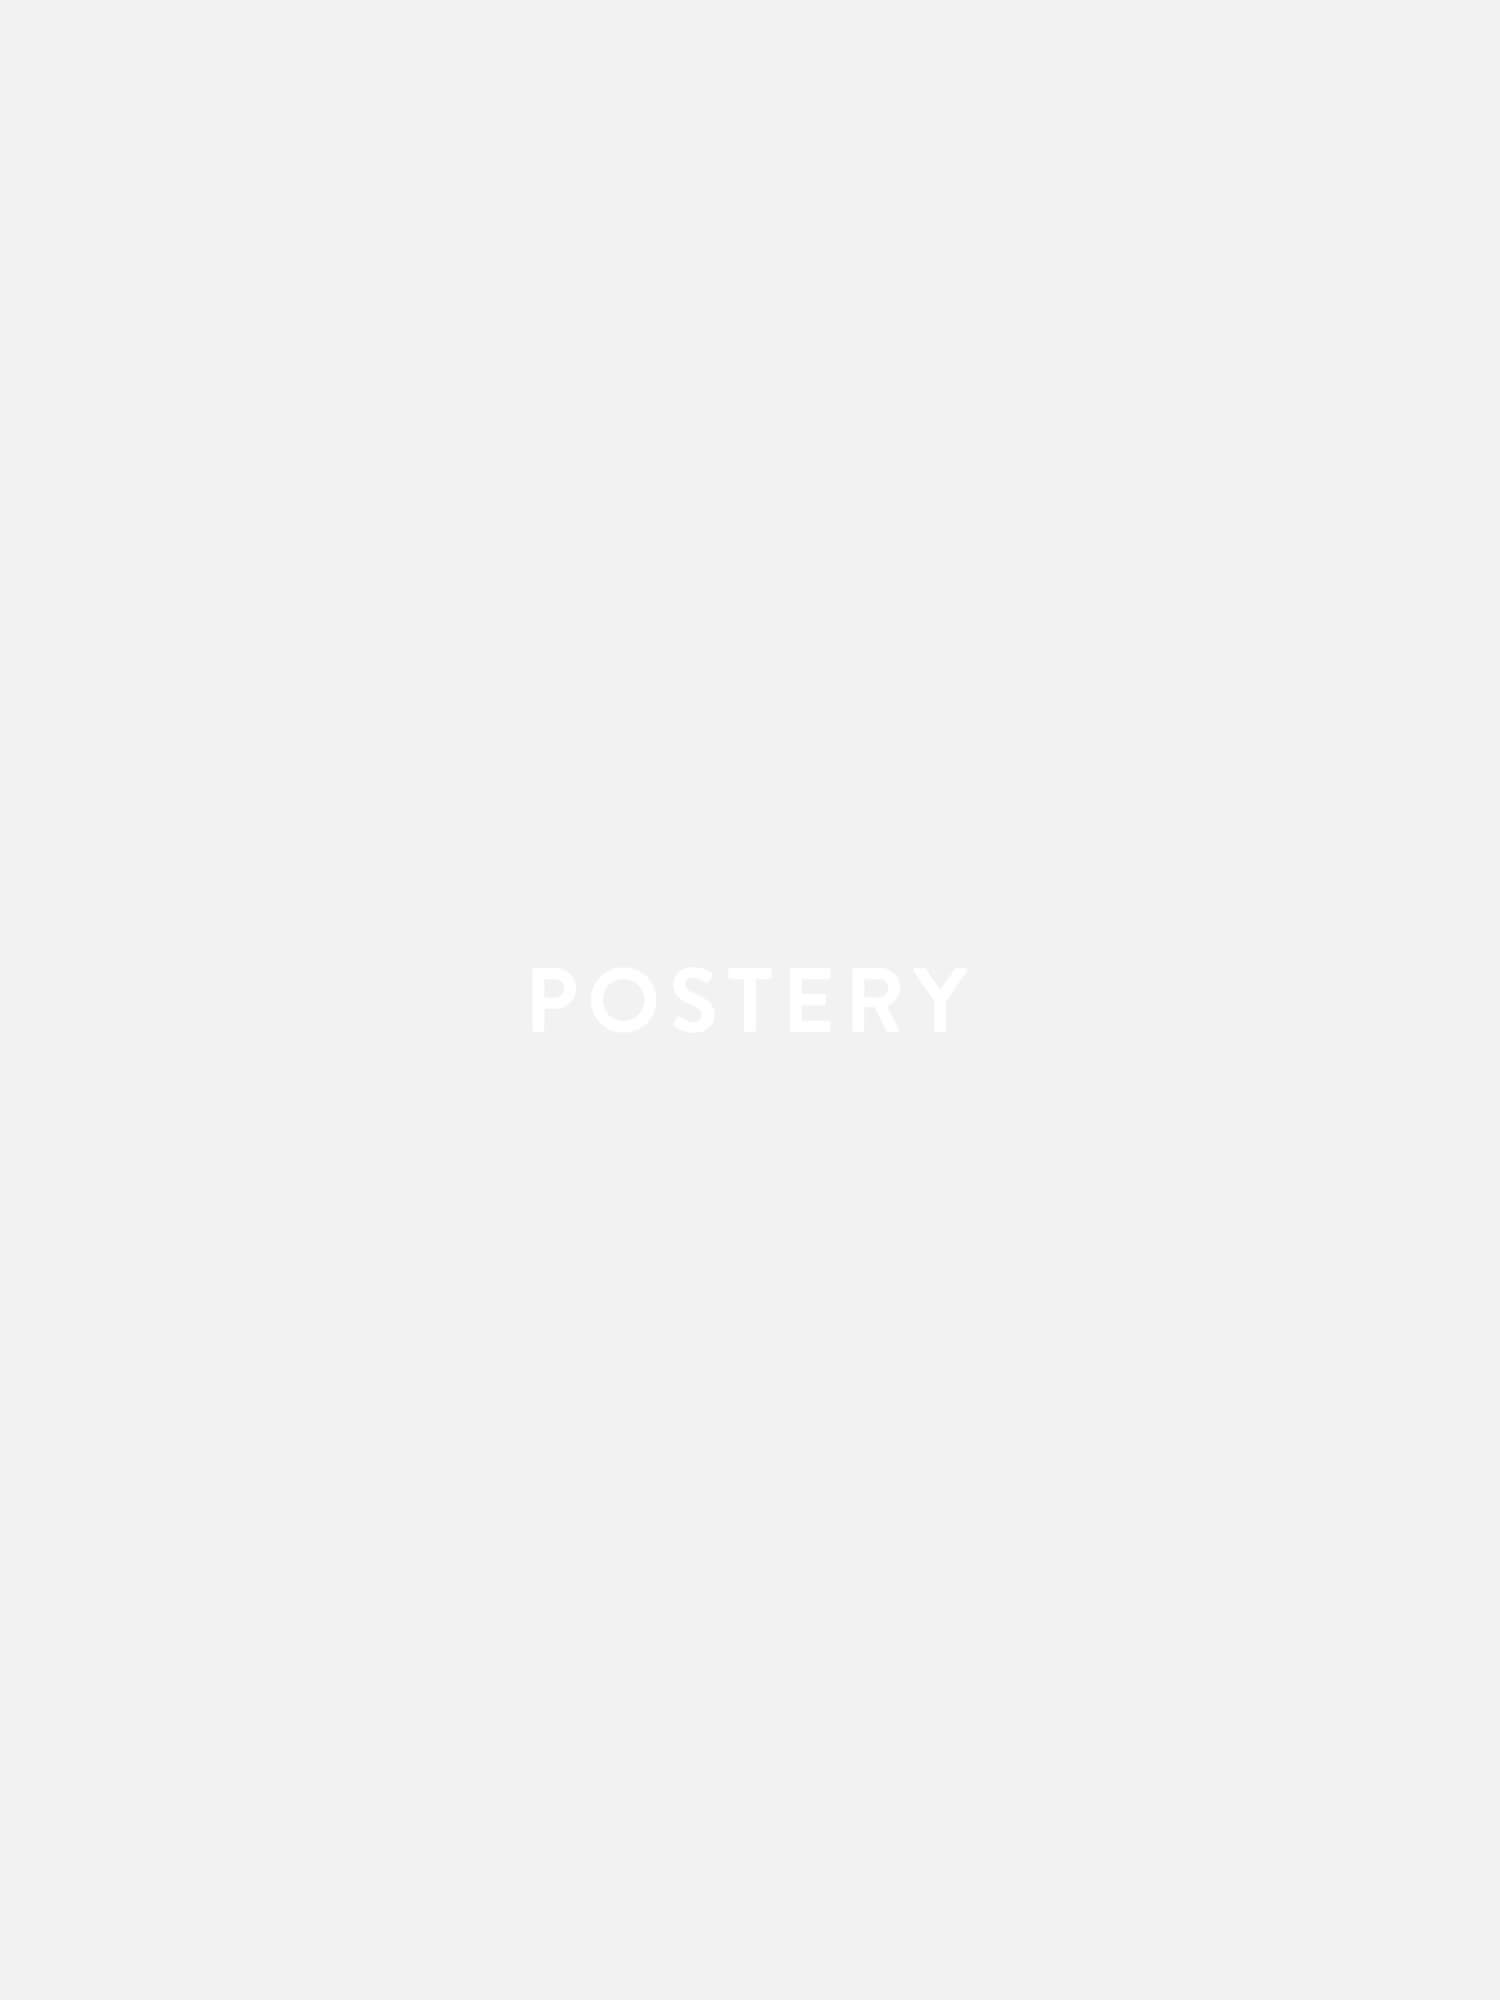 Bench on Beach Poster